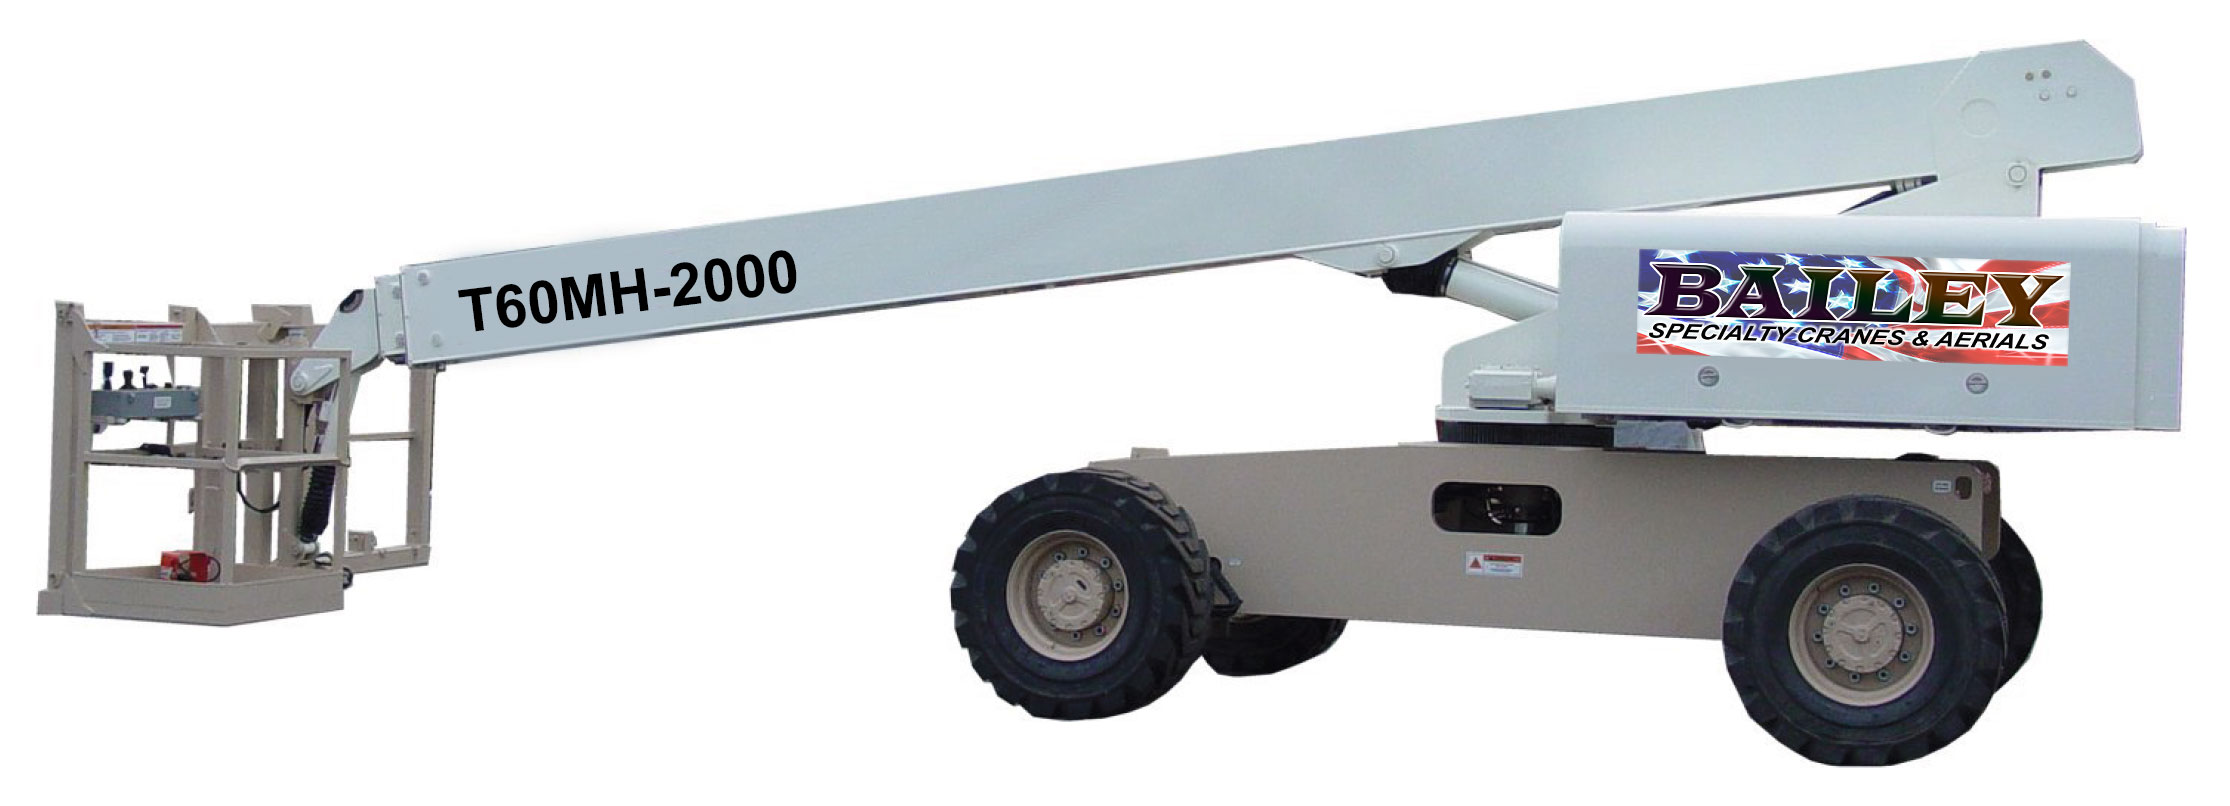 T60MH-2000 High Capacity Boom Lif